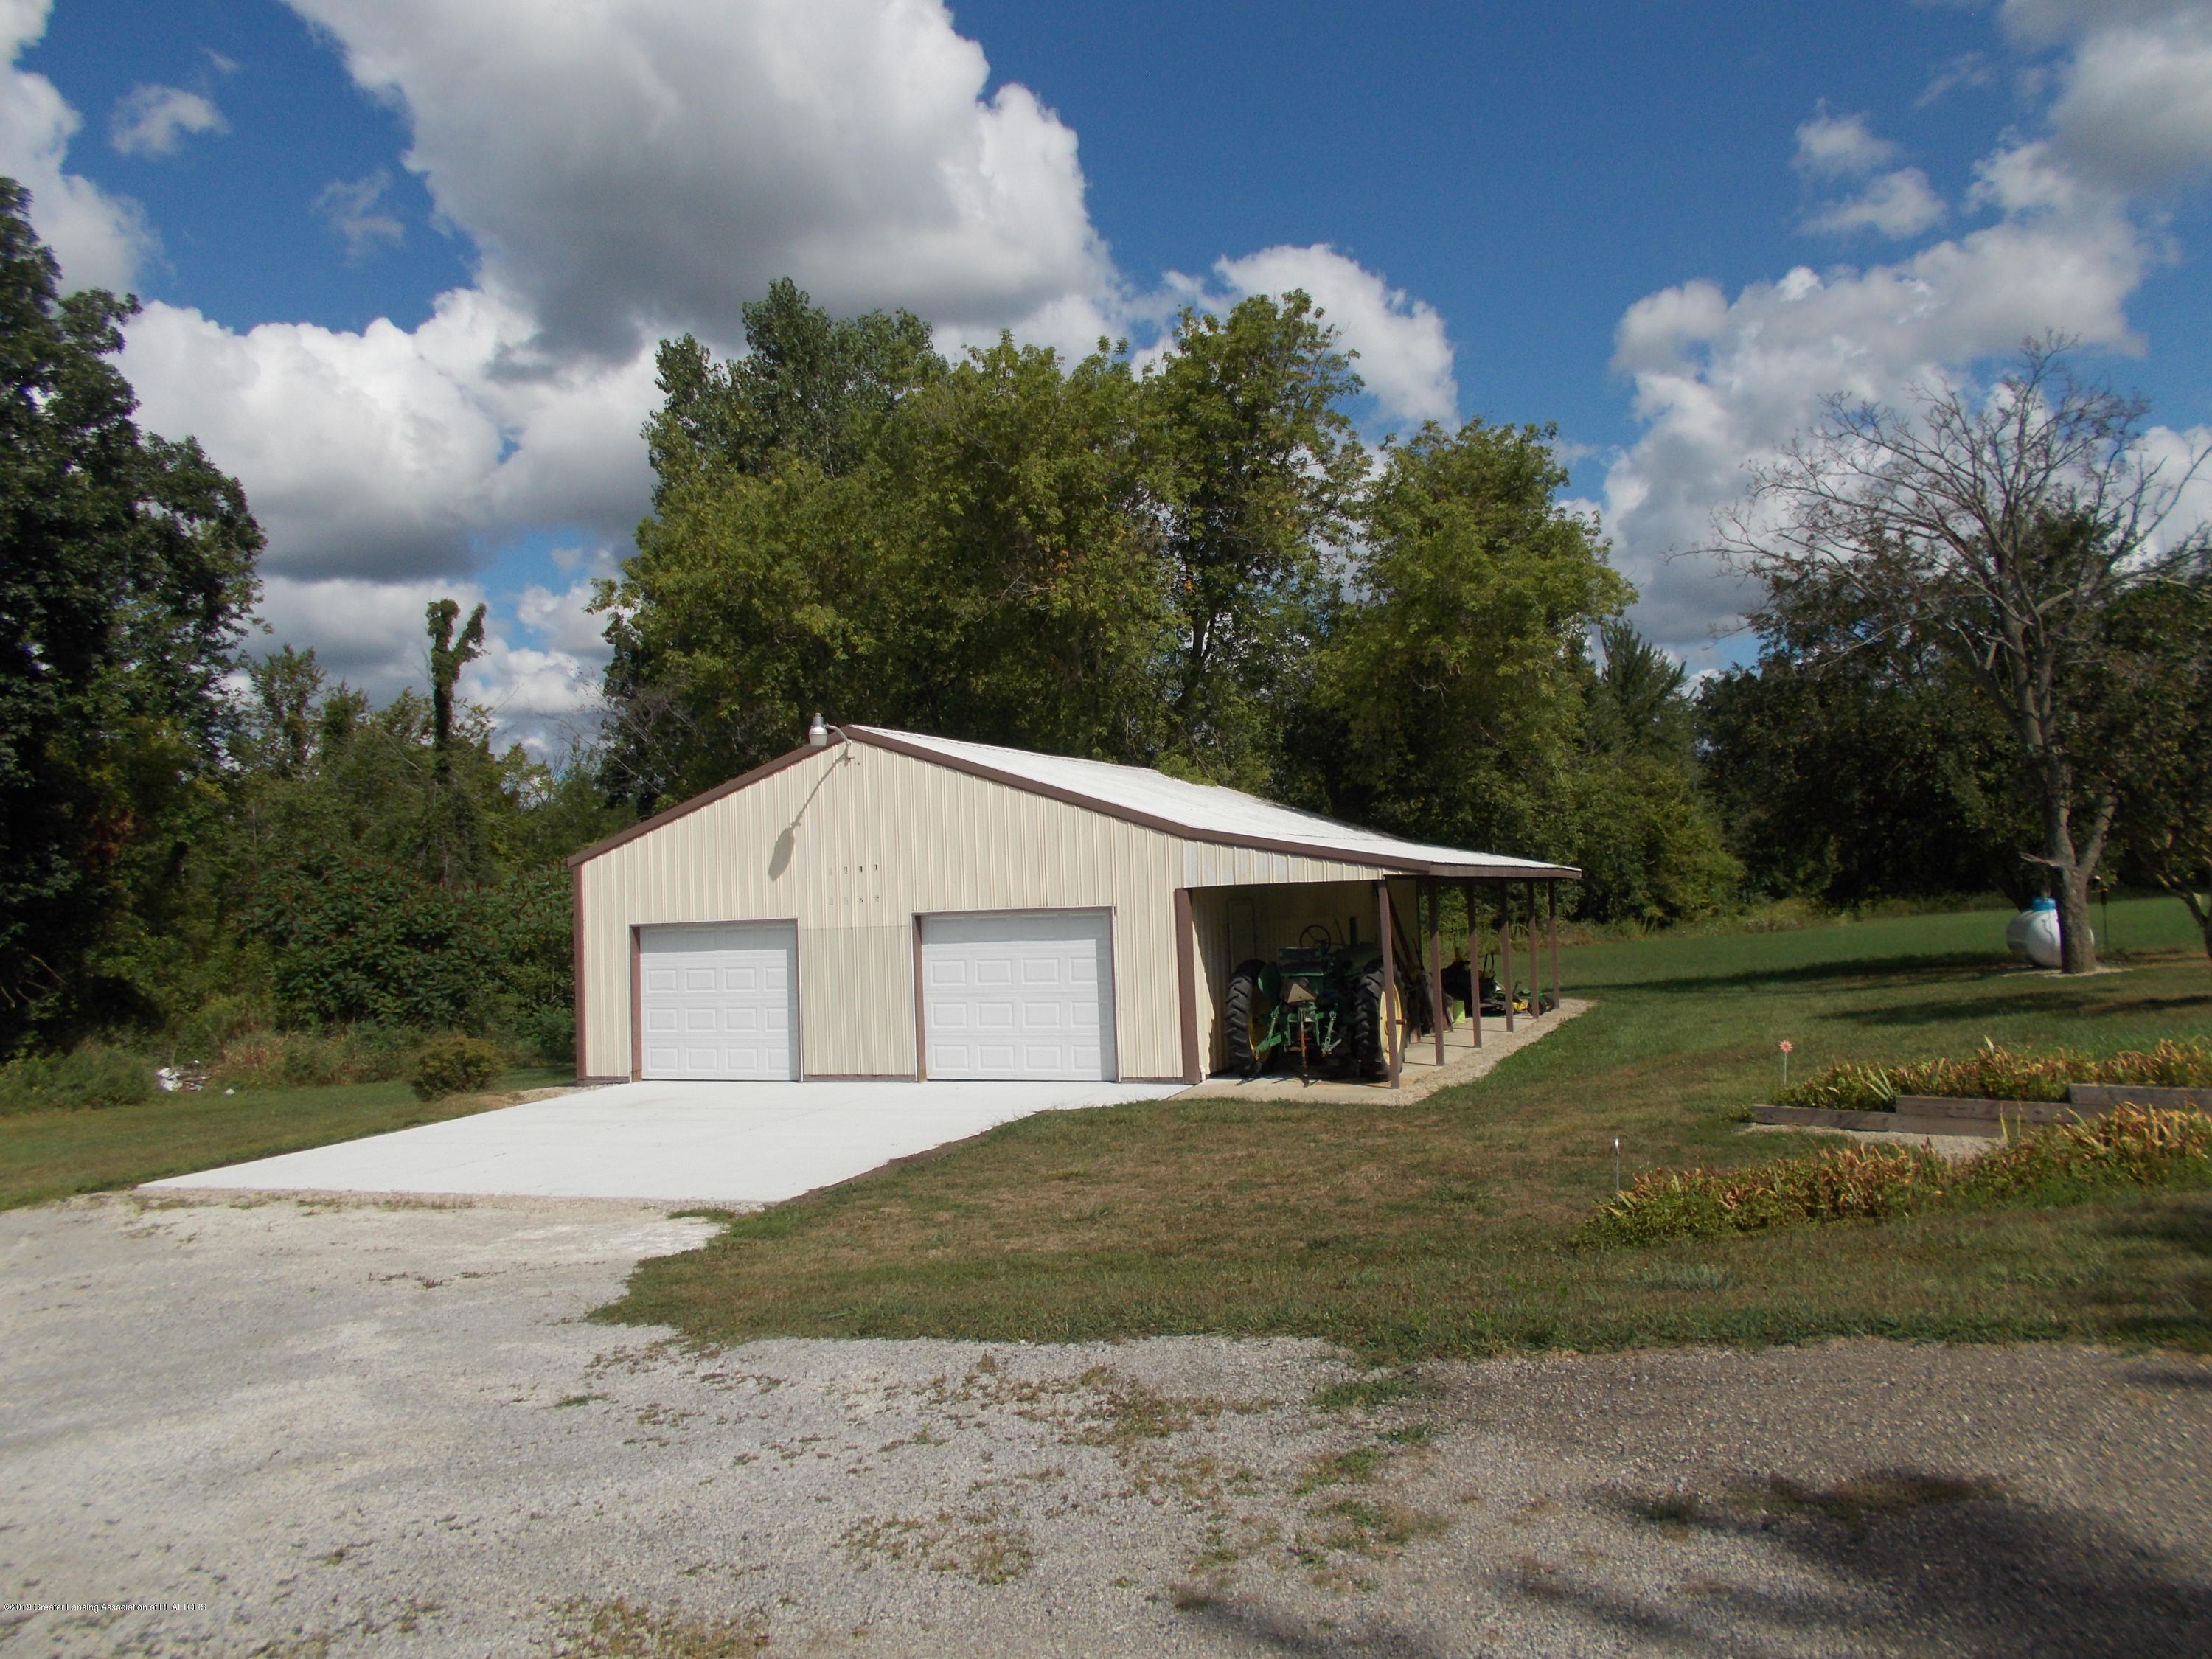 8625 E Bellevue Hwy - Pole barn/Garage - 42